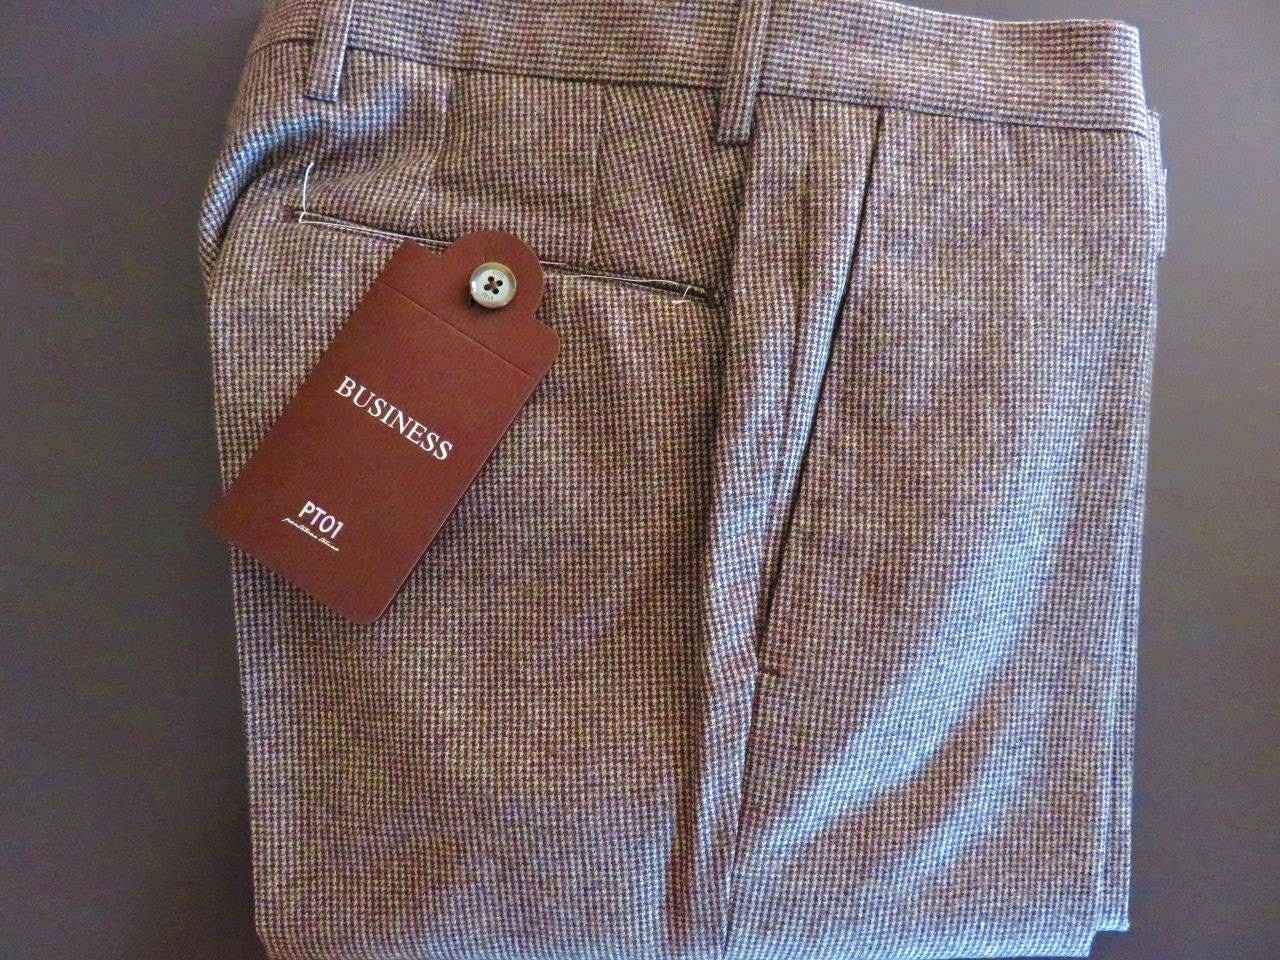 PT01 Pantaloni Torino - Luxury 100% first quality virgin wool (beige brownish)